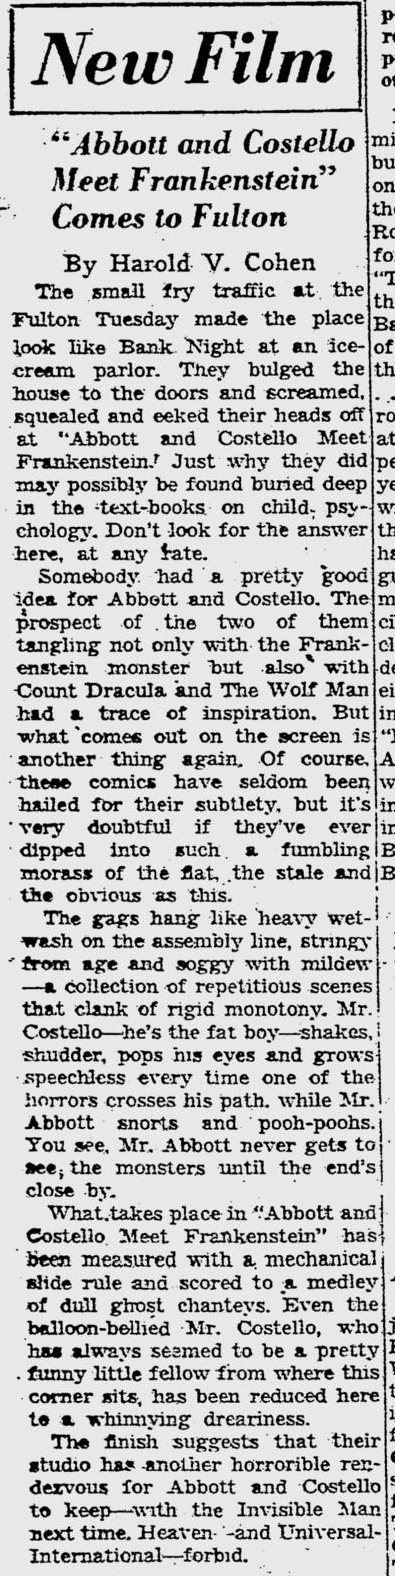 Abbott and Costello Meet Frankenstein, Pittsburgh Post-Gazette, August 17, 1948 b